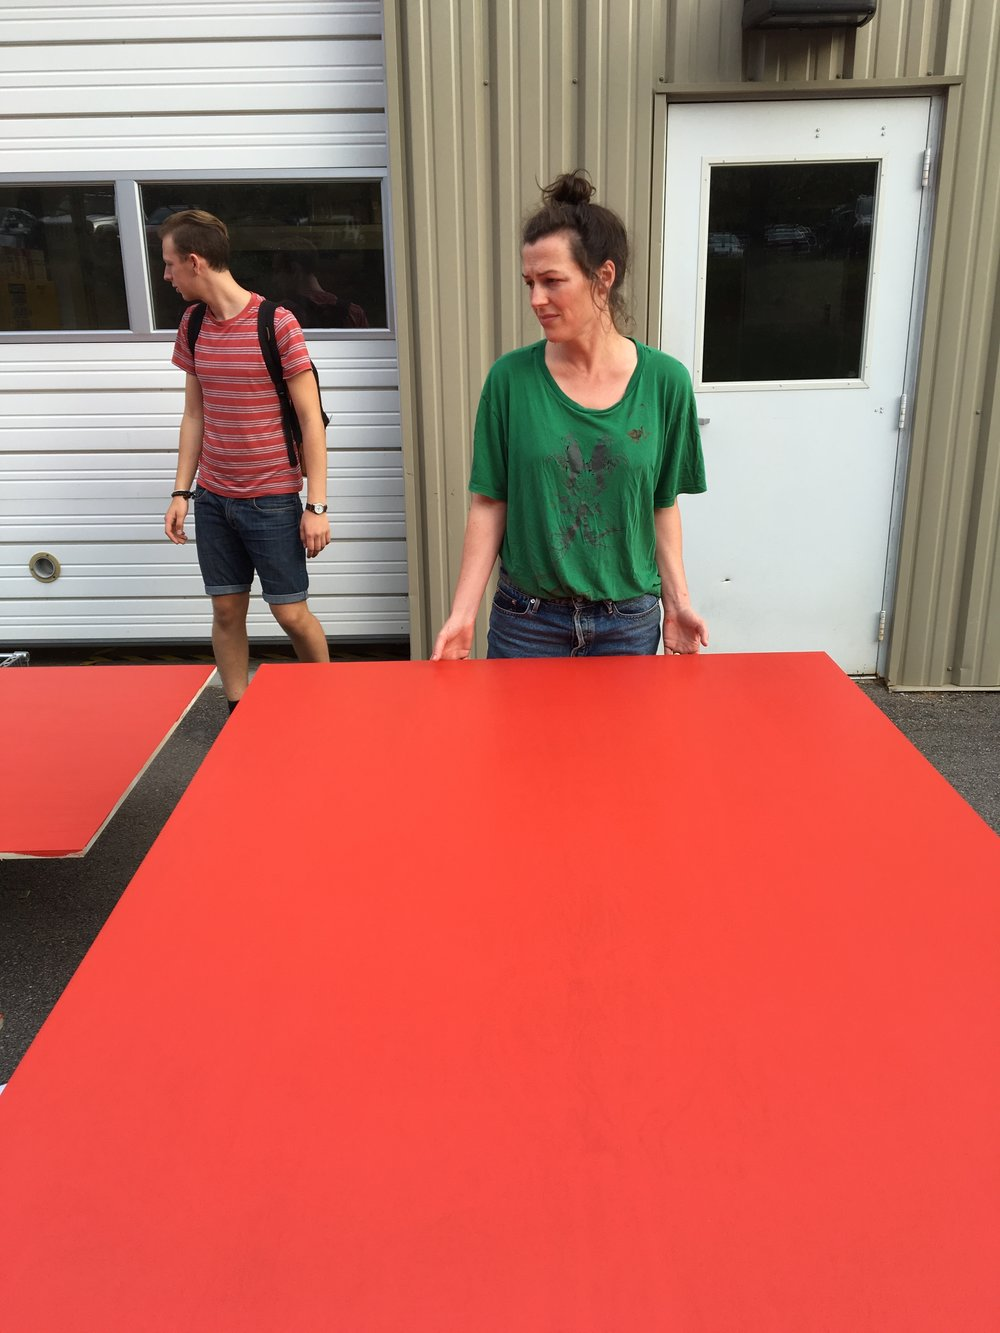 Sara moving a freshly-painted plywood sheet.